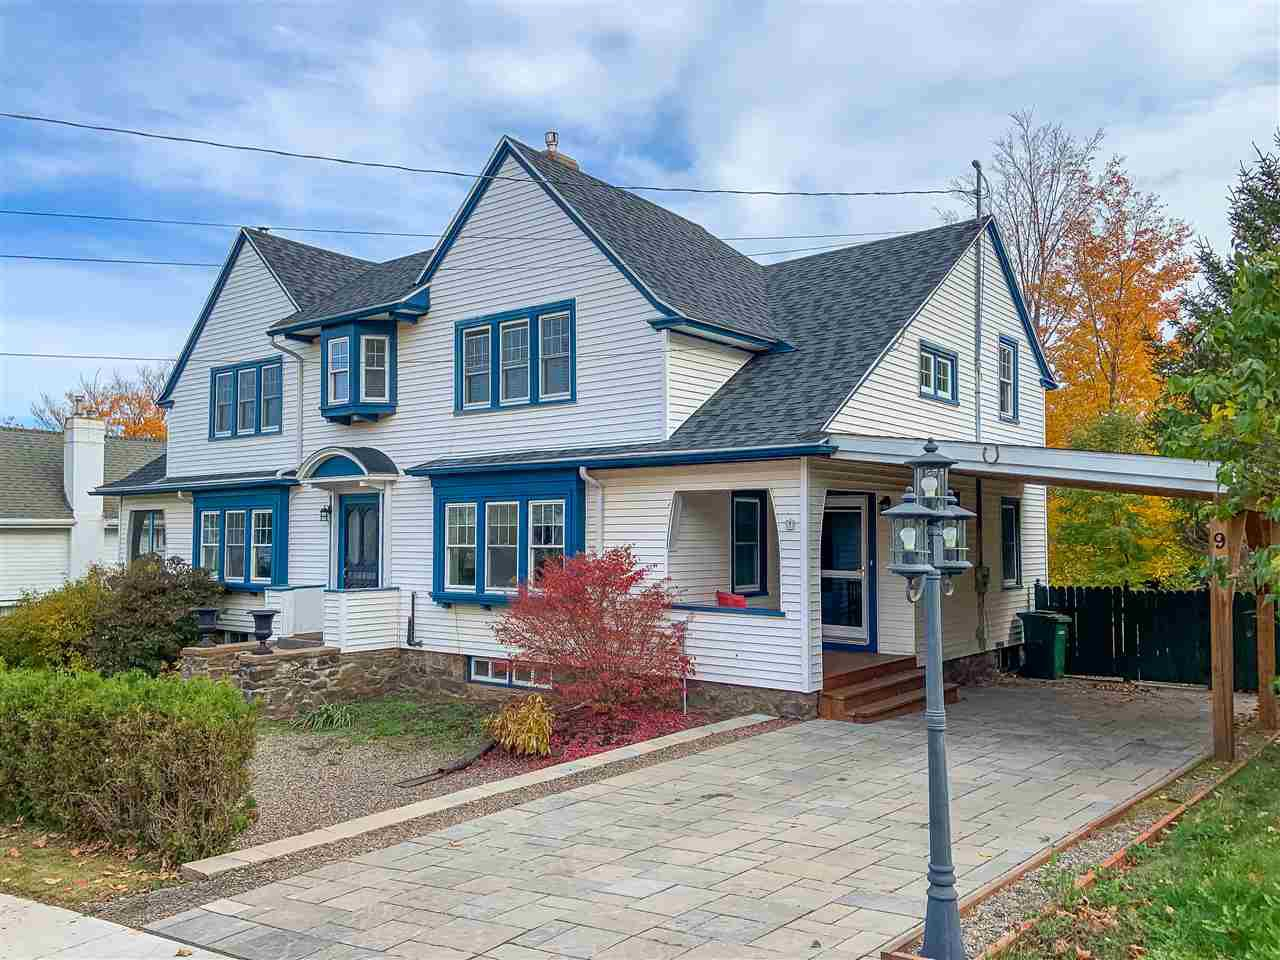 Main Photo: 9 Seaview Avenue in Wolfville: 404-Kings County Residential for sale (Annapolis Valley)  : MLS®# 202022826